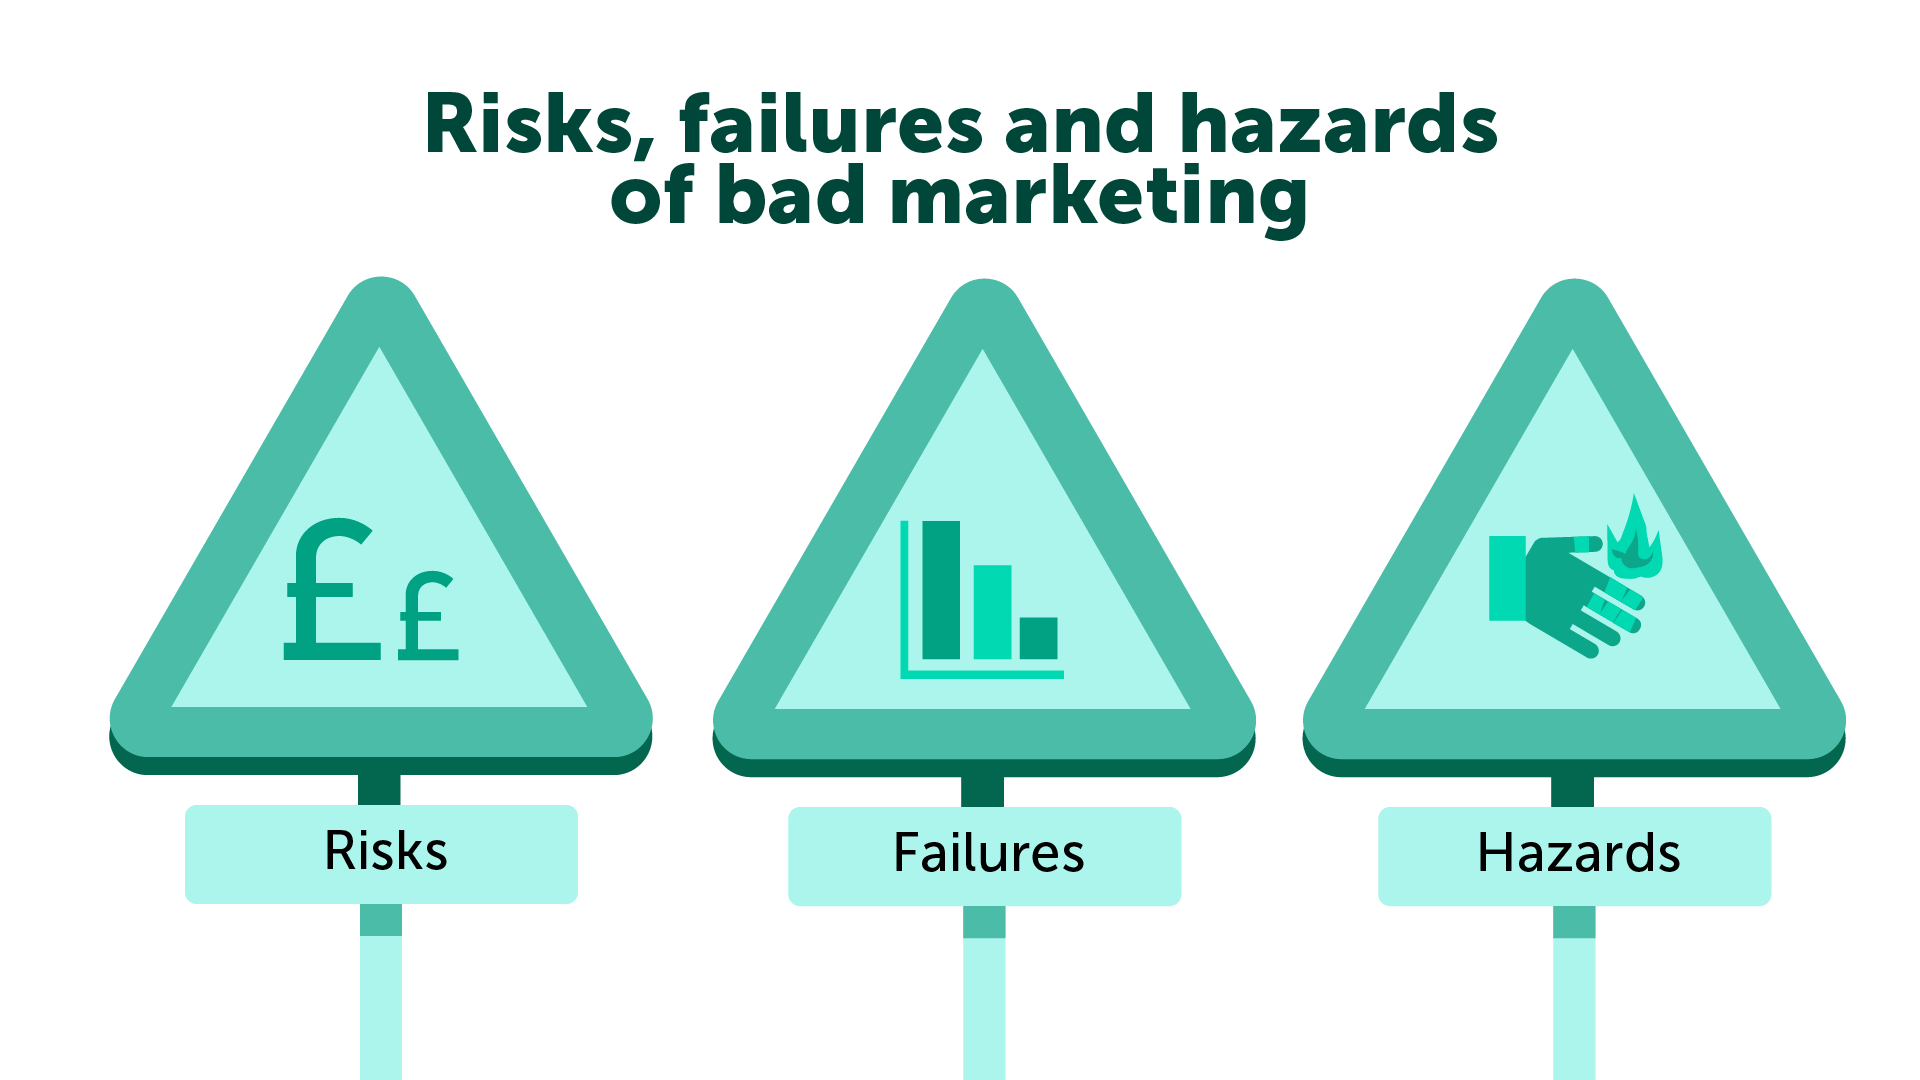 Image: Risks, failures and hazards of bad marketing